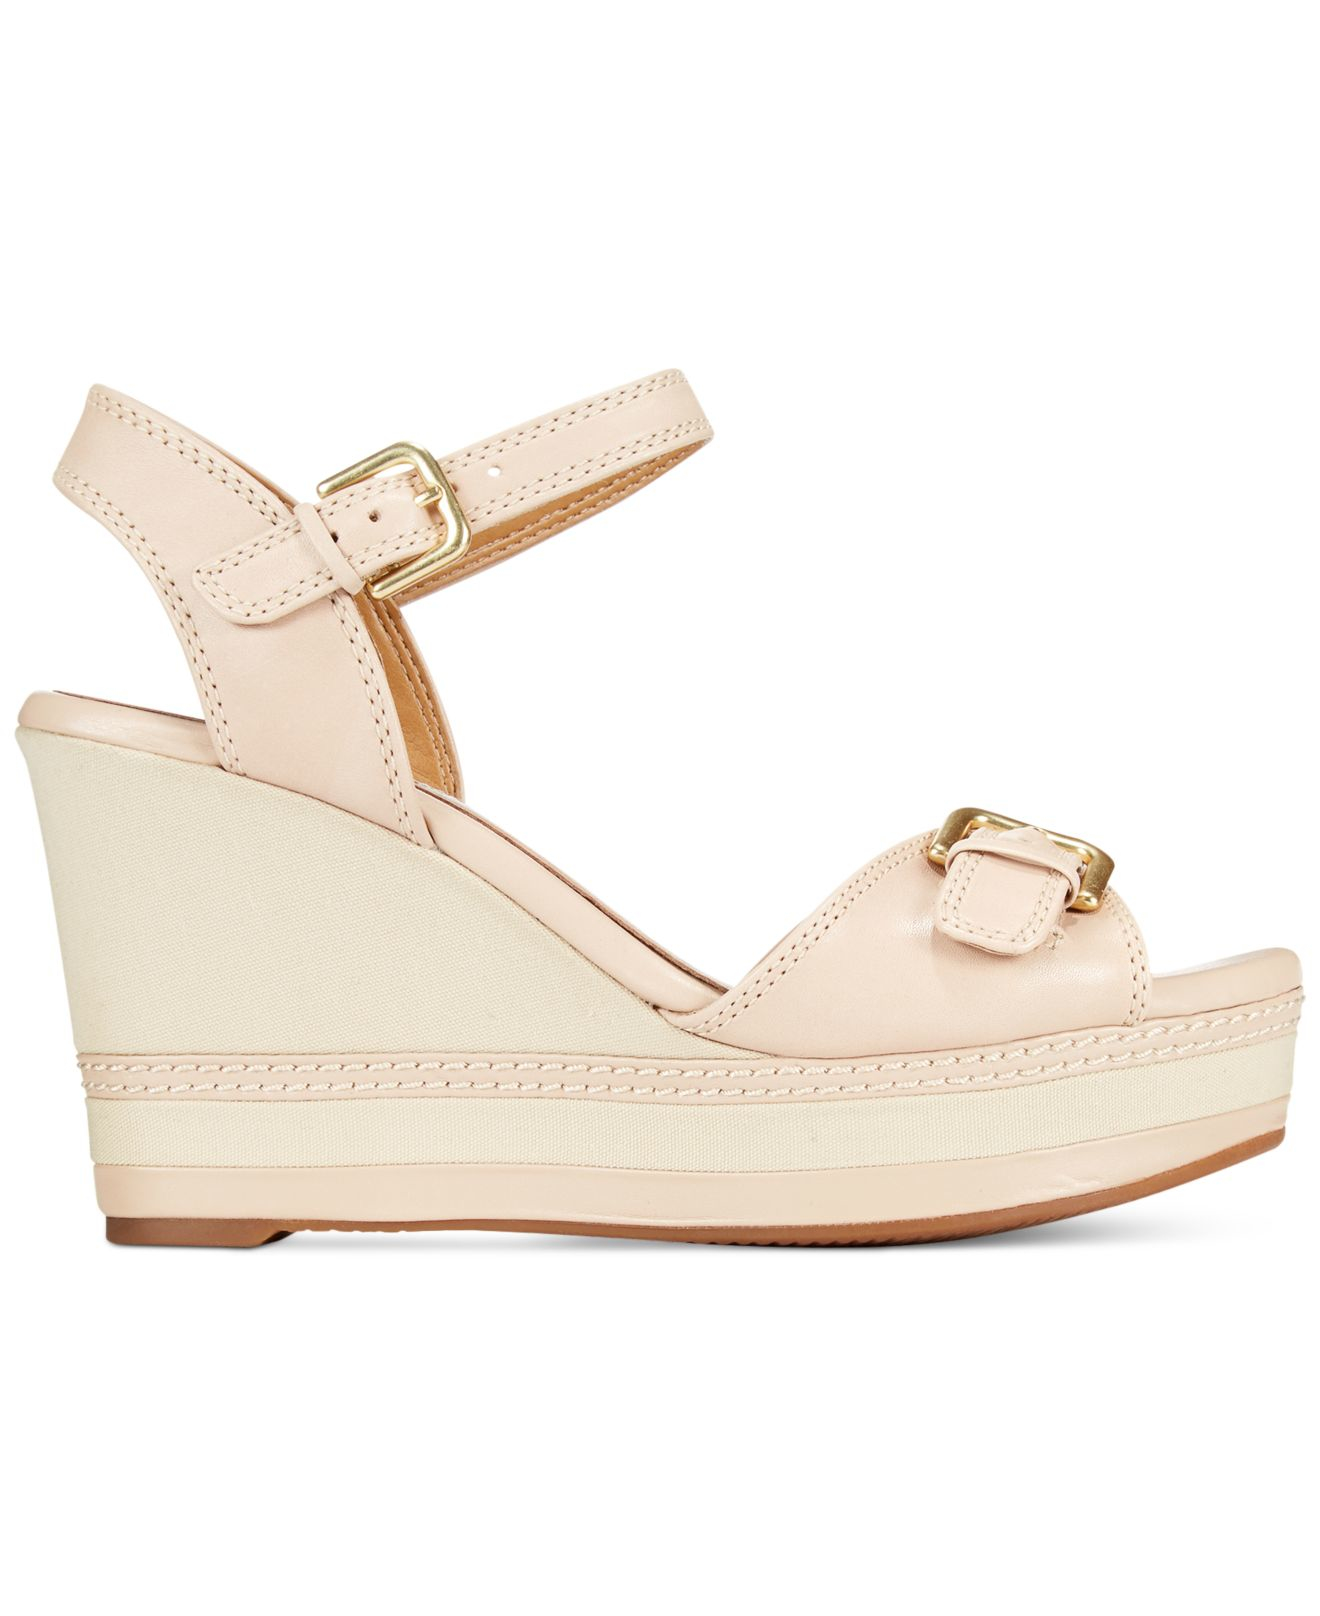 5301b407093 Lyst - Clarks Collection Women s Zia Castle Wedge Sandals in Natural